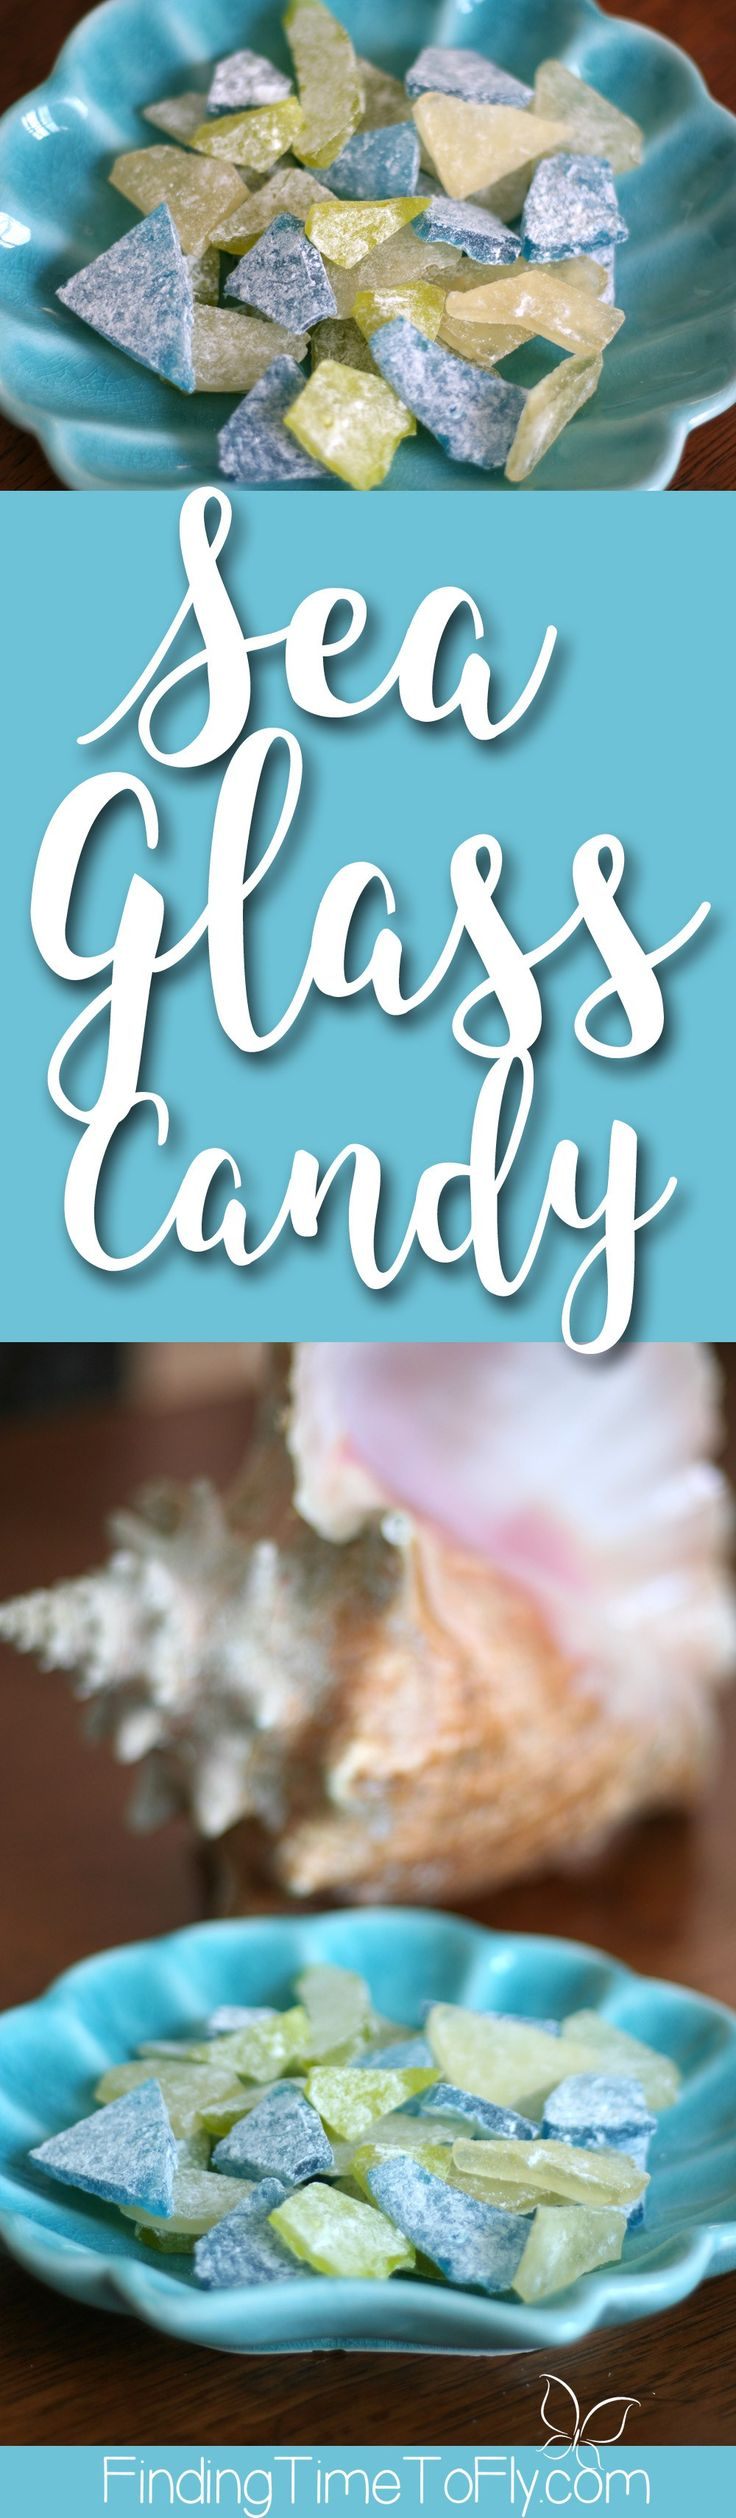 how to make glass candy without corn syrup